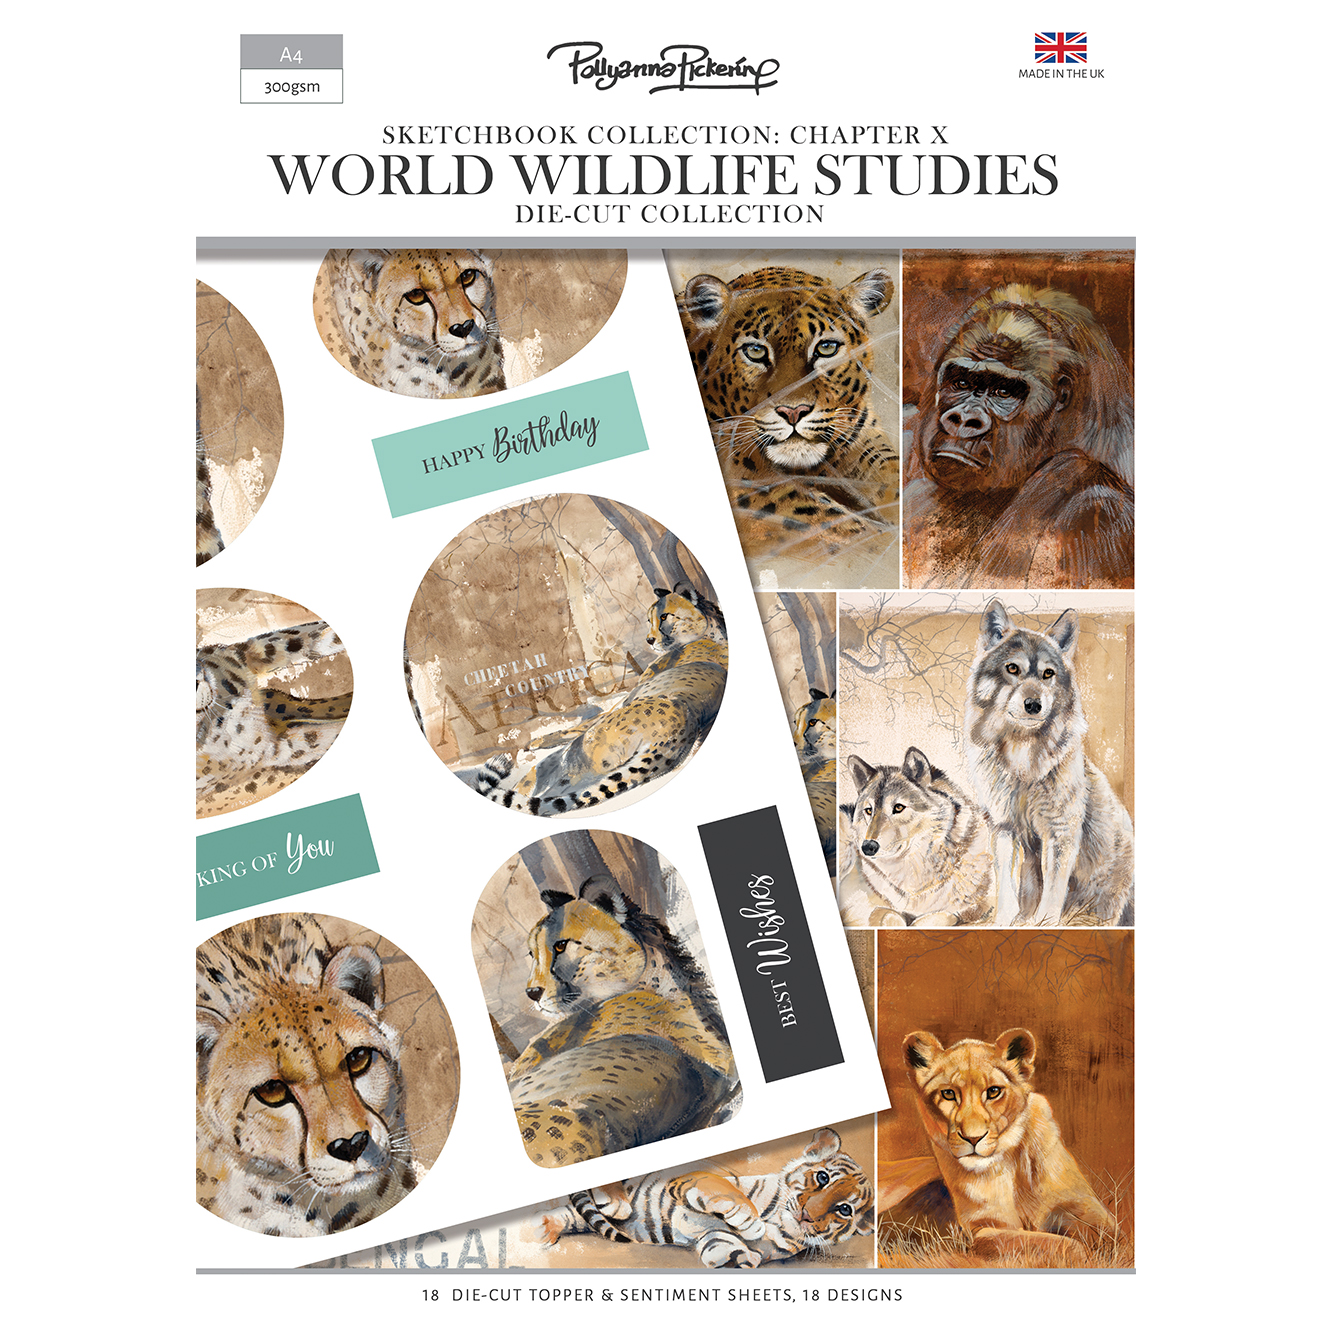 Pollyanna Pickering's Sketchbook Collection Chapter X World Wildlife Studies – Die Cut Collection